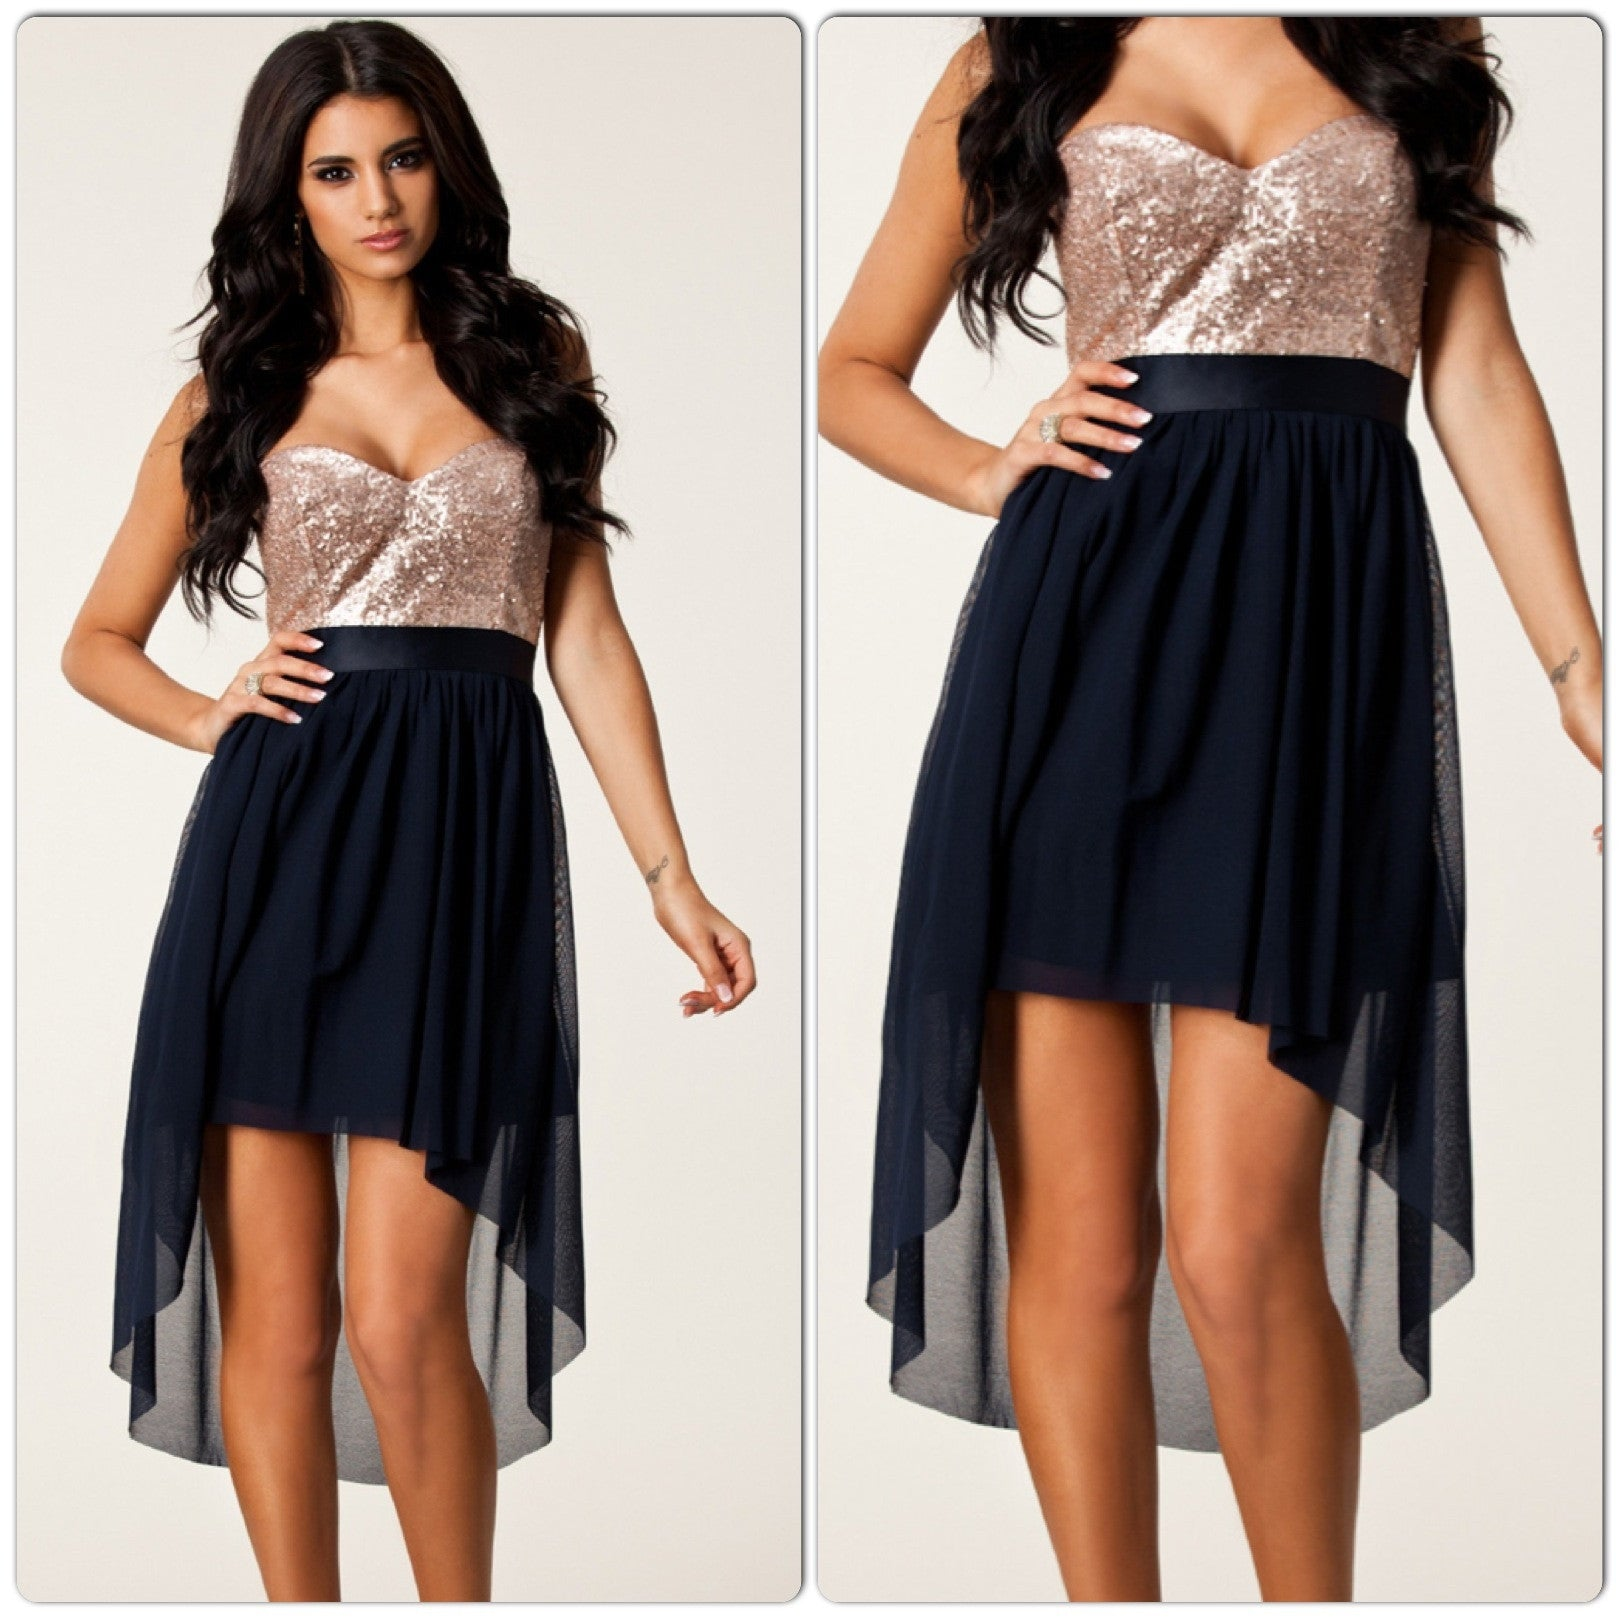 Navy Nude Sequin High Low Cocktail Dress 6254 - IBL Fashion - 1